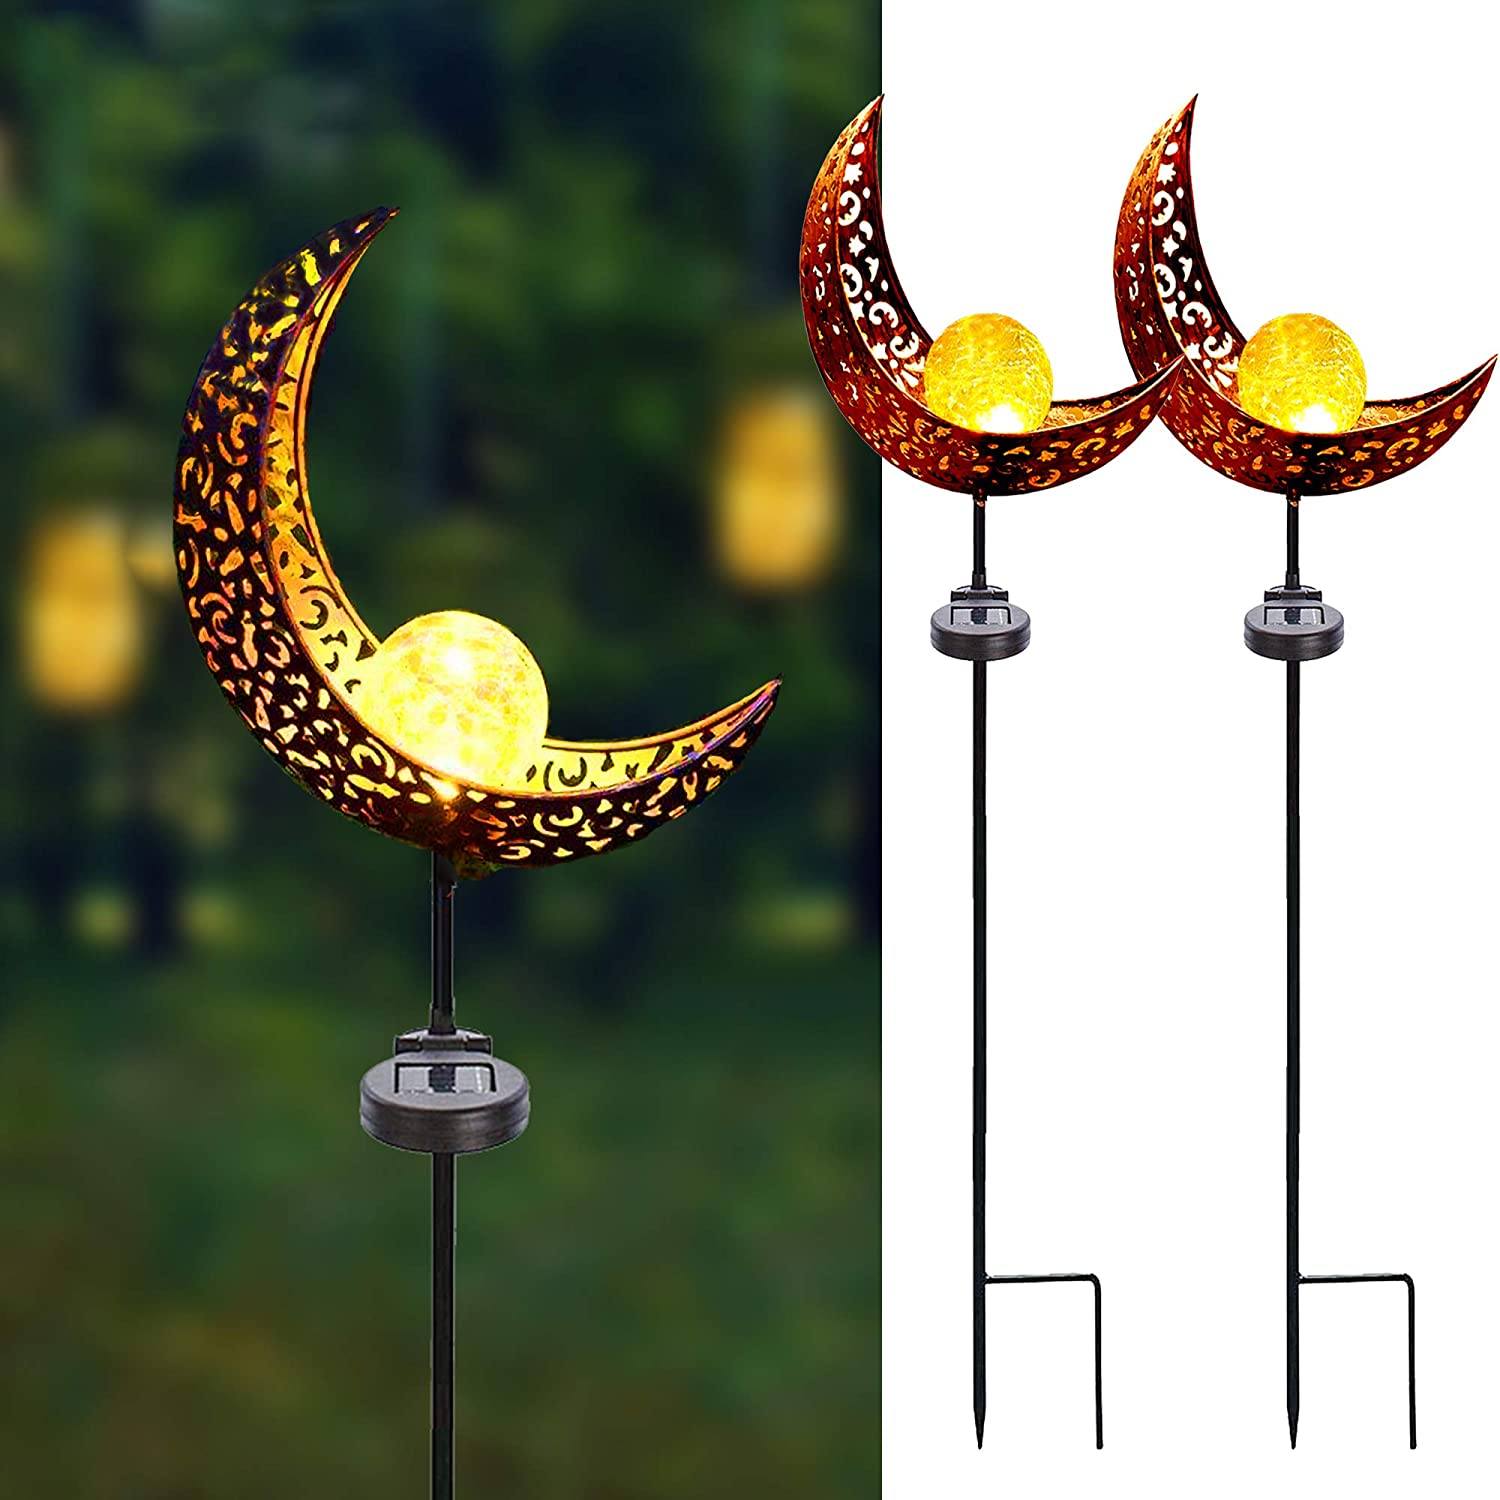 Solar Garden Stake Lights,2 Pack Crackle Glass Globe Antique Brass Metal Outdoor Solar Moon Lights for Lawn Patio Yard Wedding Party Decoration Light